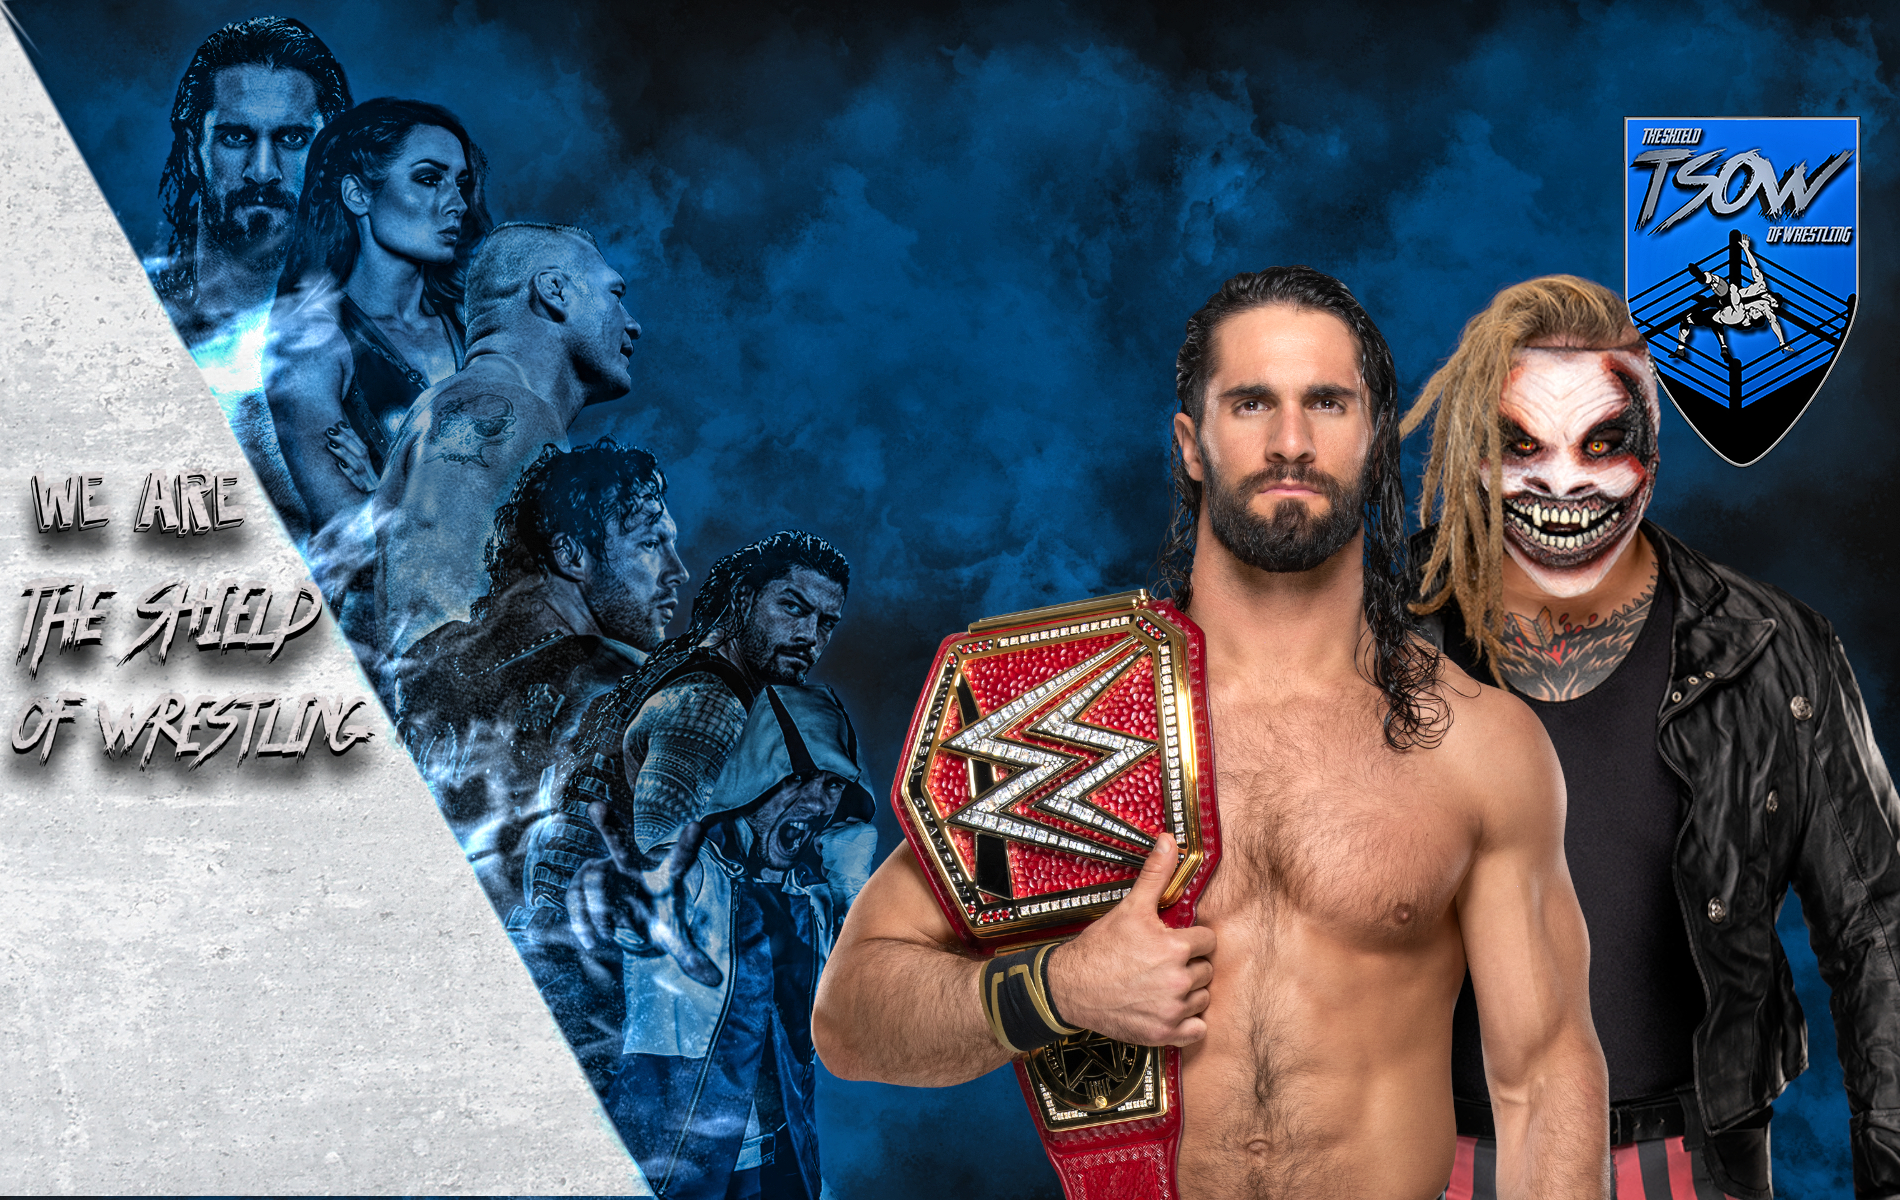 Seth Rollins vs The Fiend